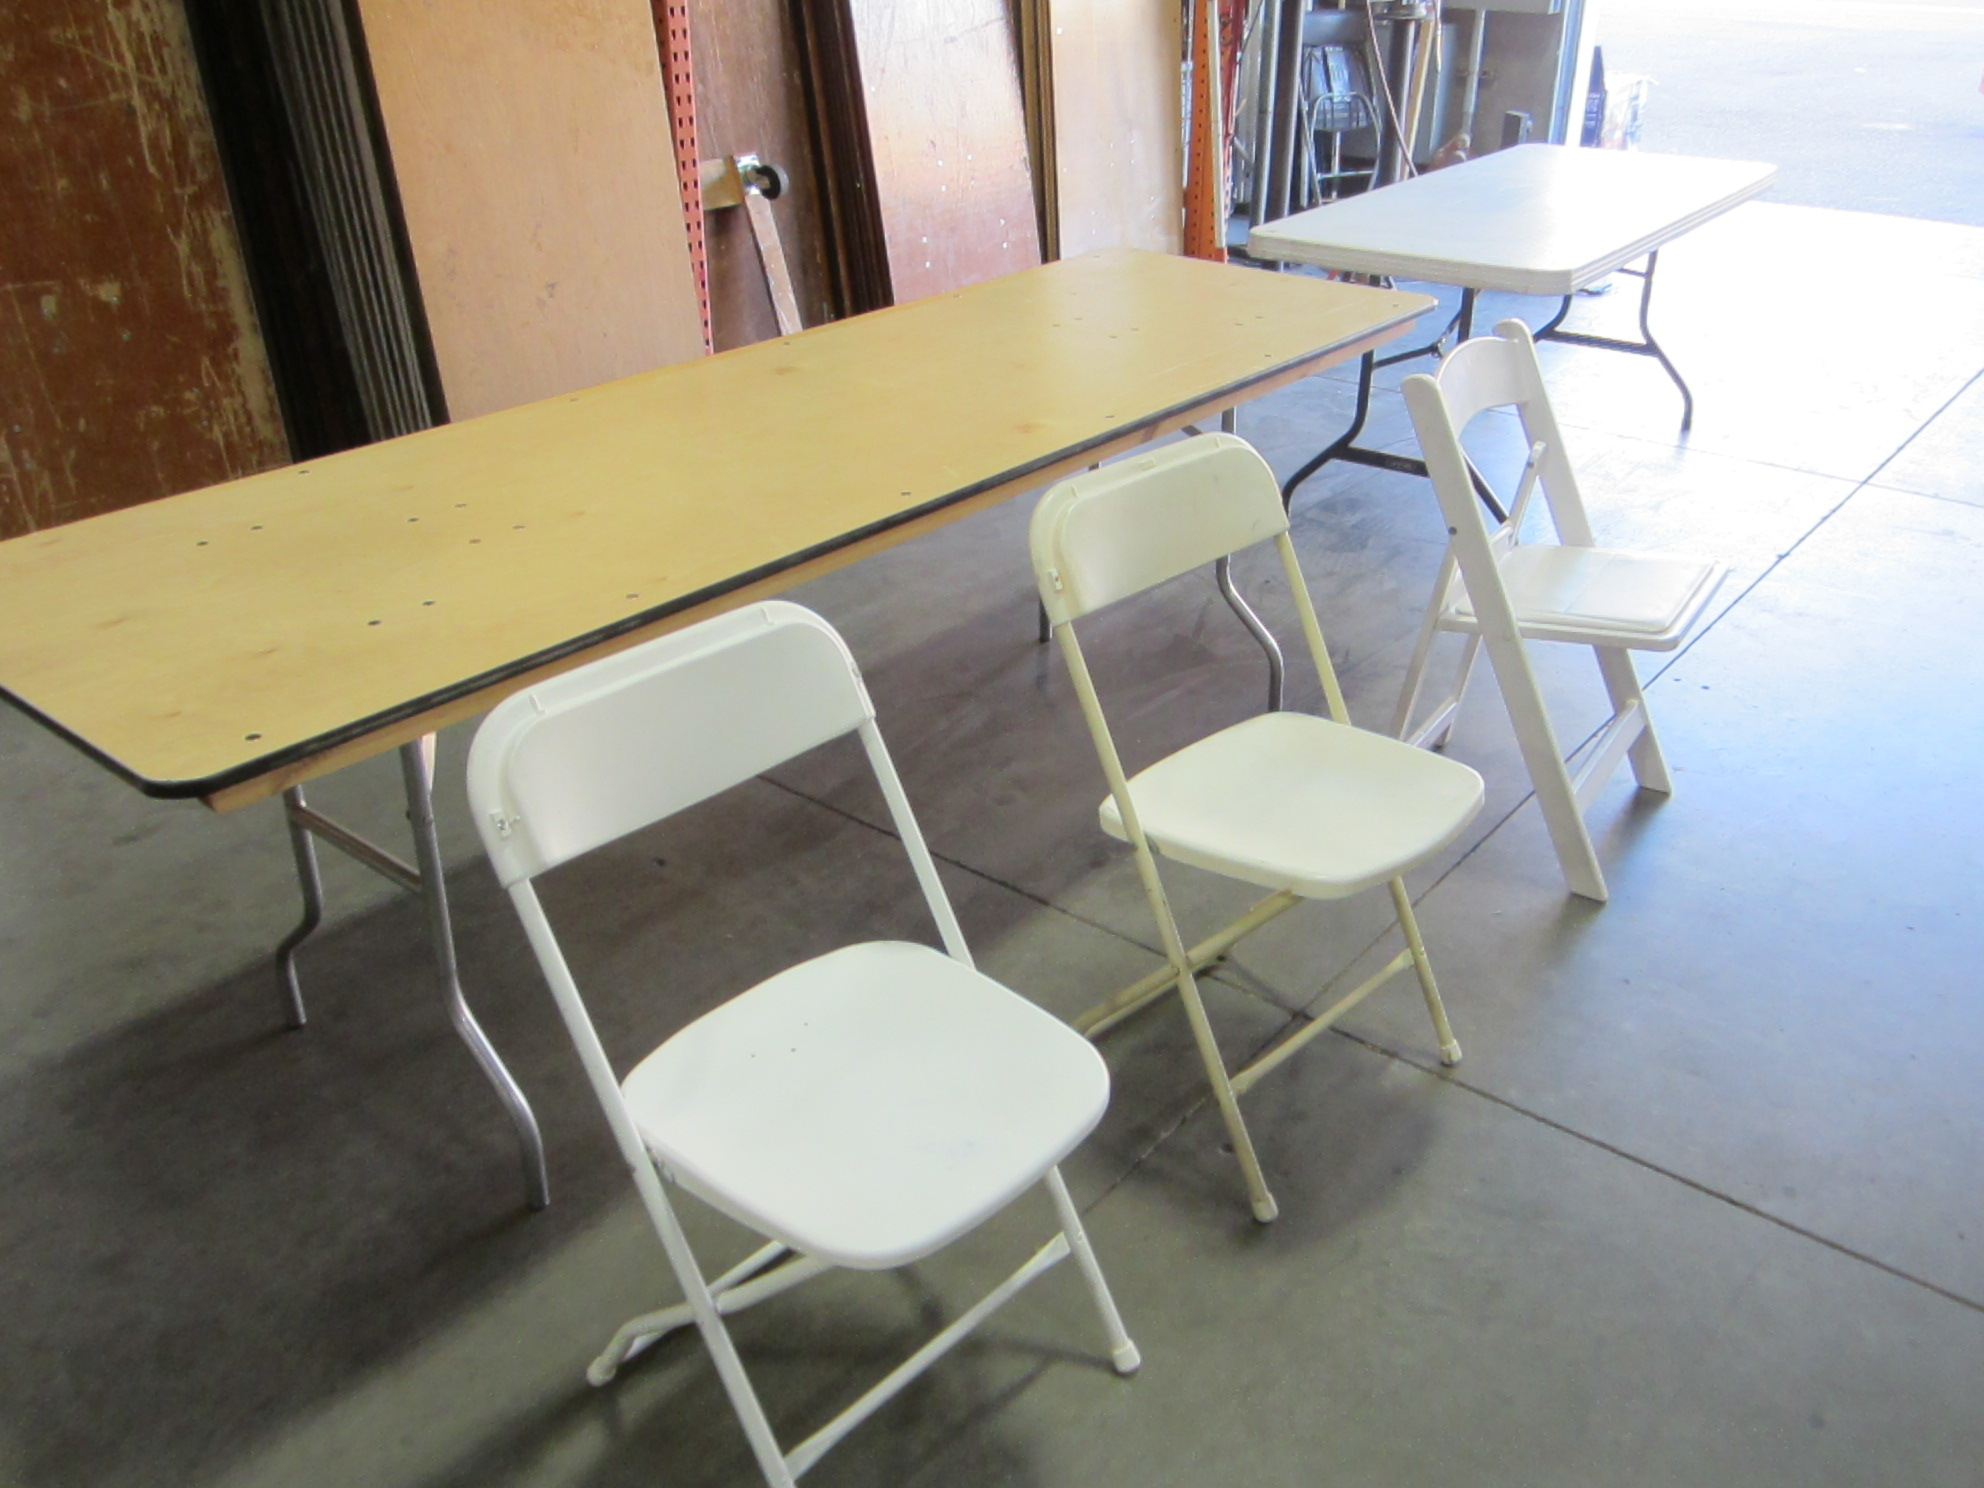 chair rentals phoenix black bean bag taylor equipment and event rental in peoria az whitepages